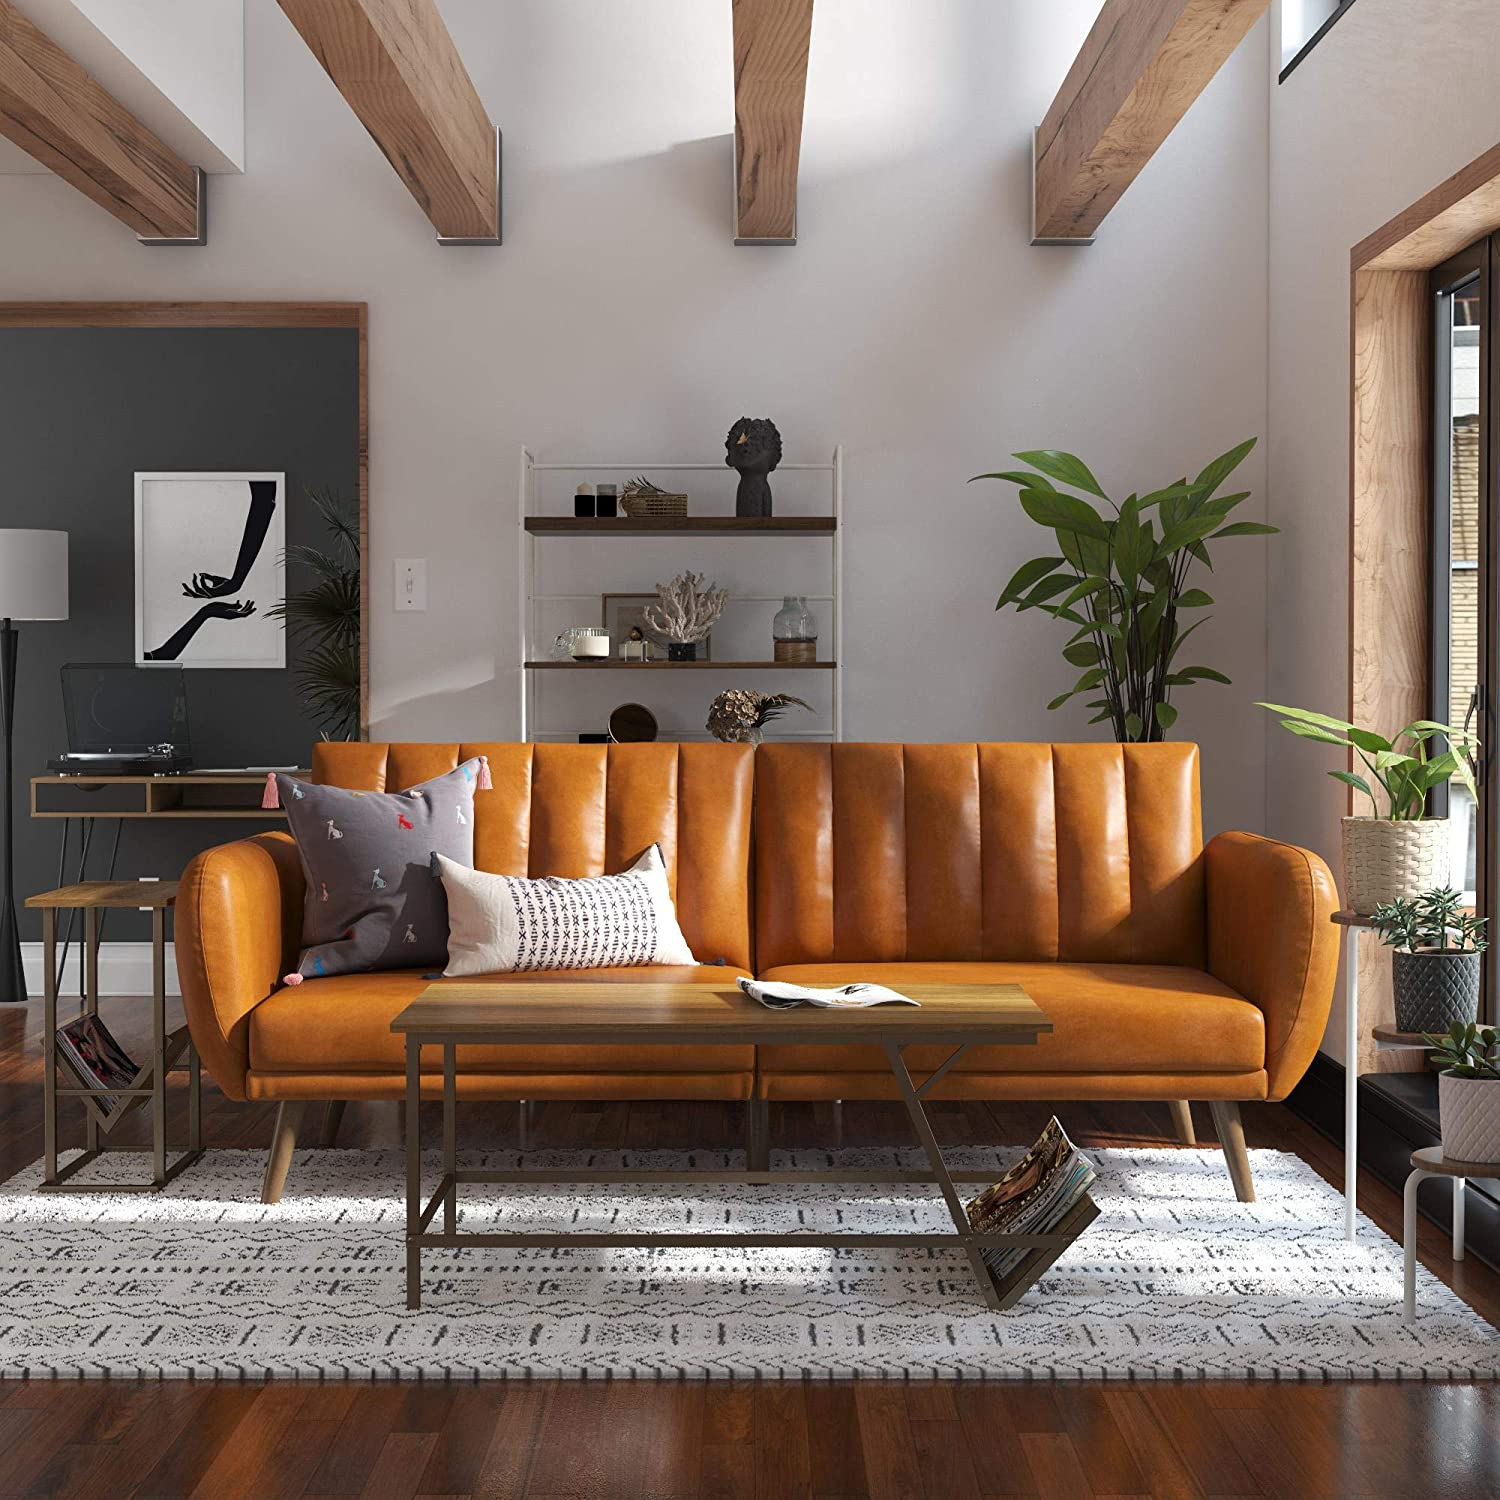 Novogratz Brittany Futon, Convertible Sofa & Couch, Camel Intended For Brittany Sectional Futon Sofas (View 4 of 15)